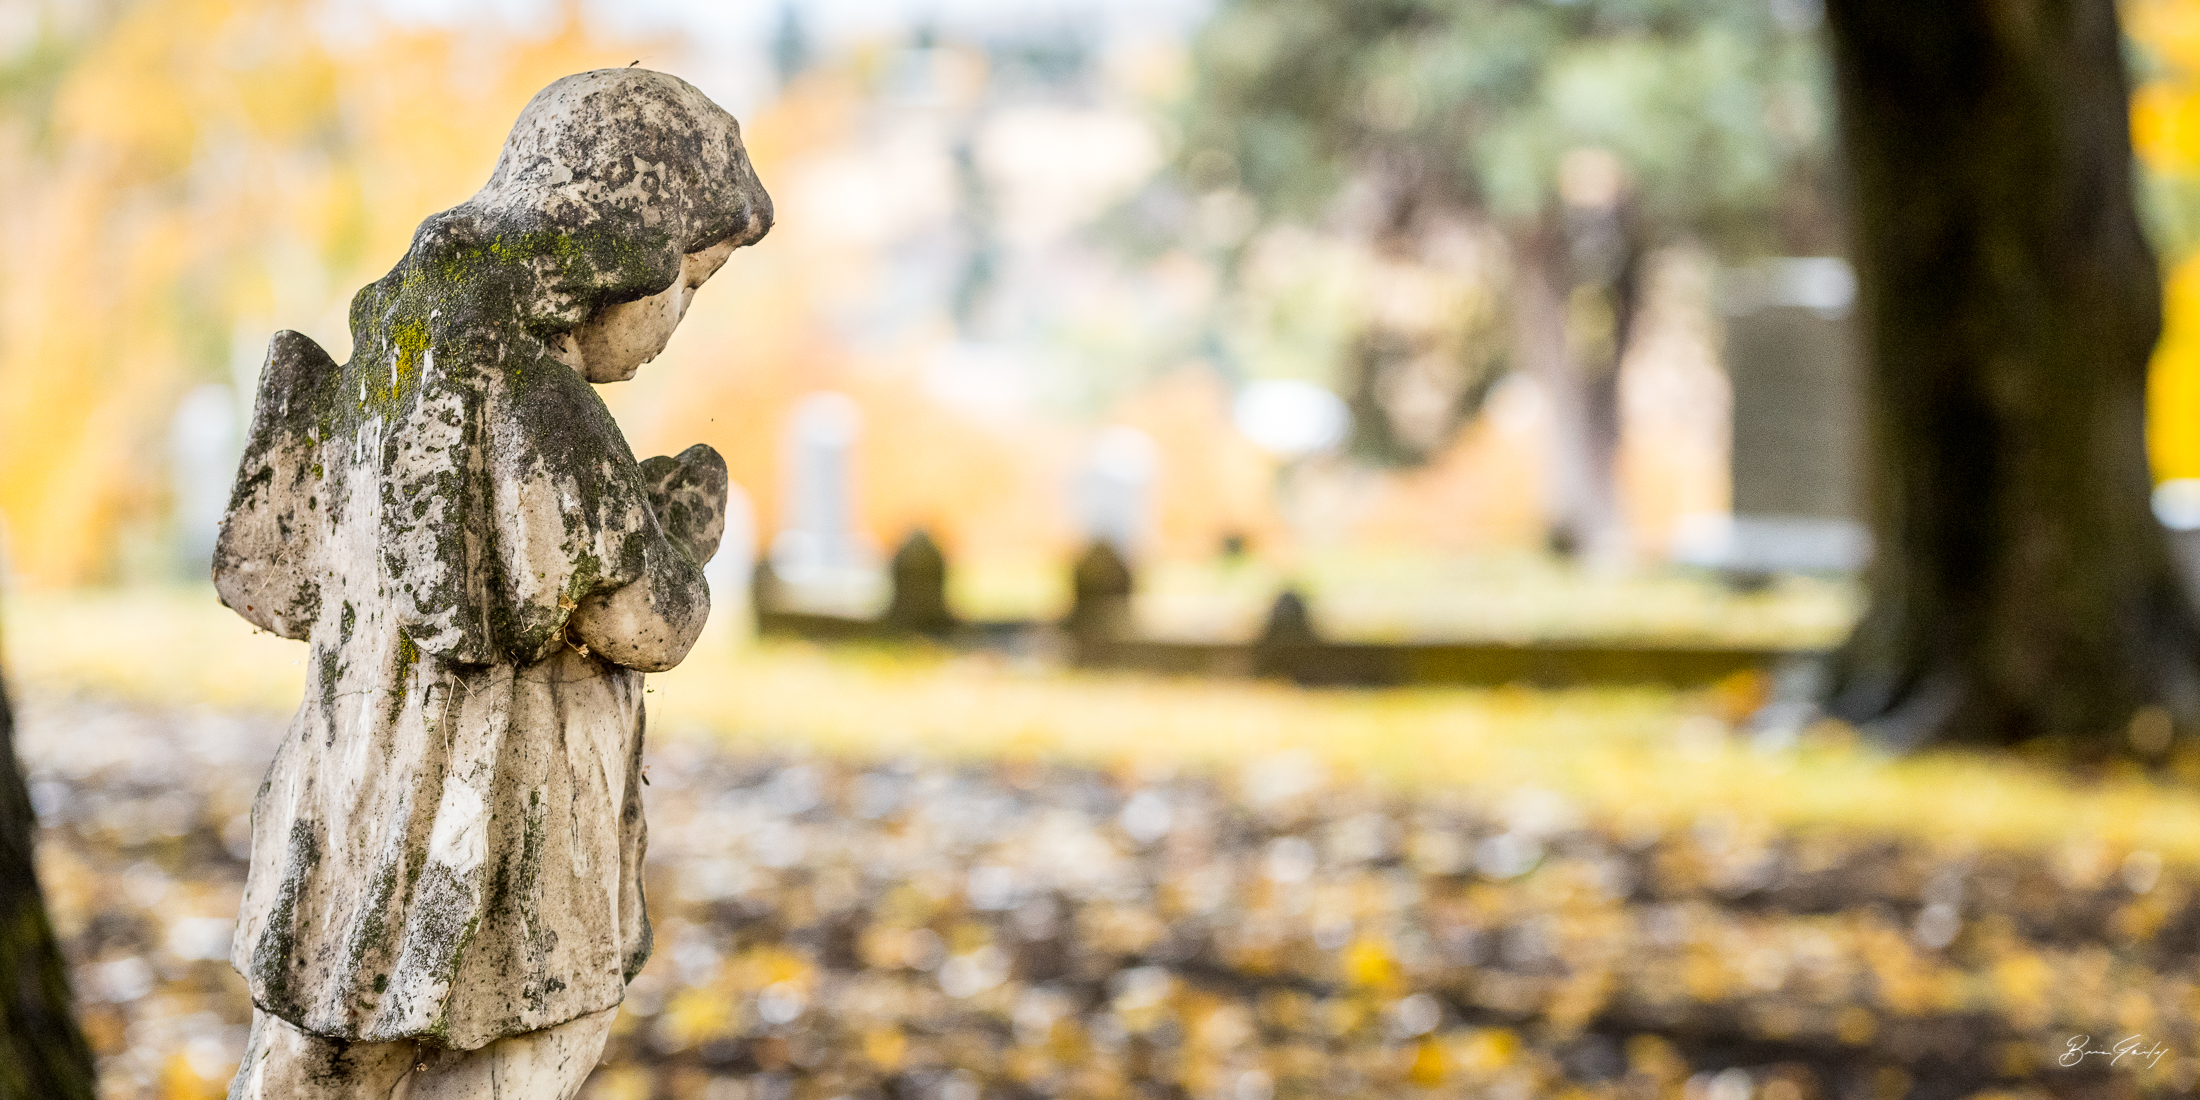 The angel is watching over the Linkville Cemetery. Image: Brian Gailey